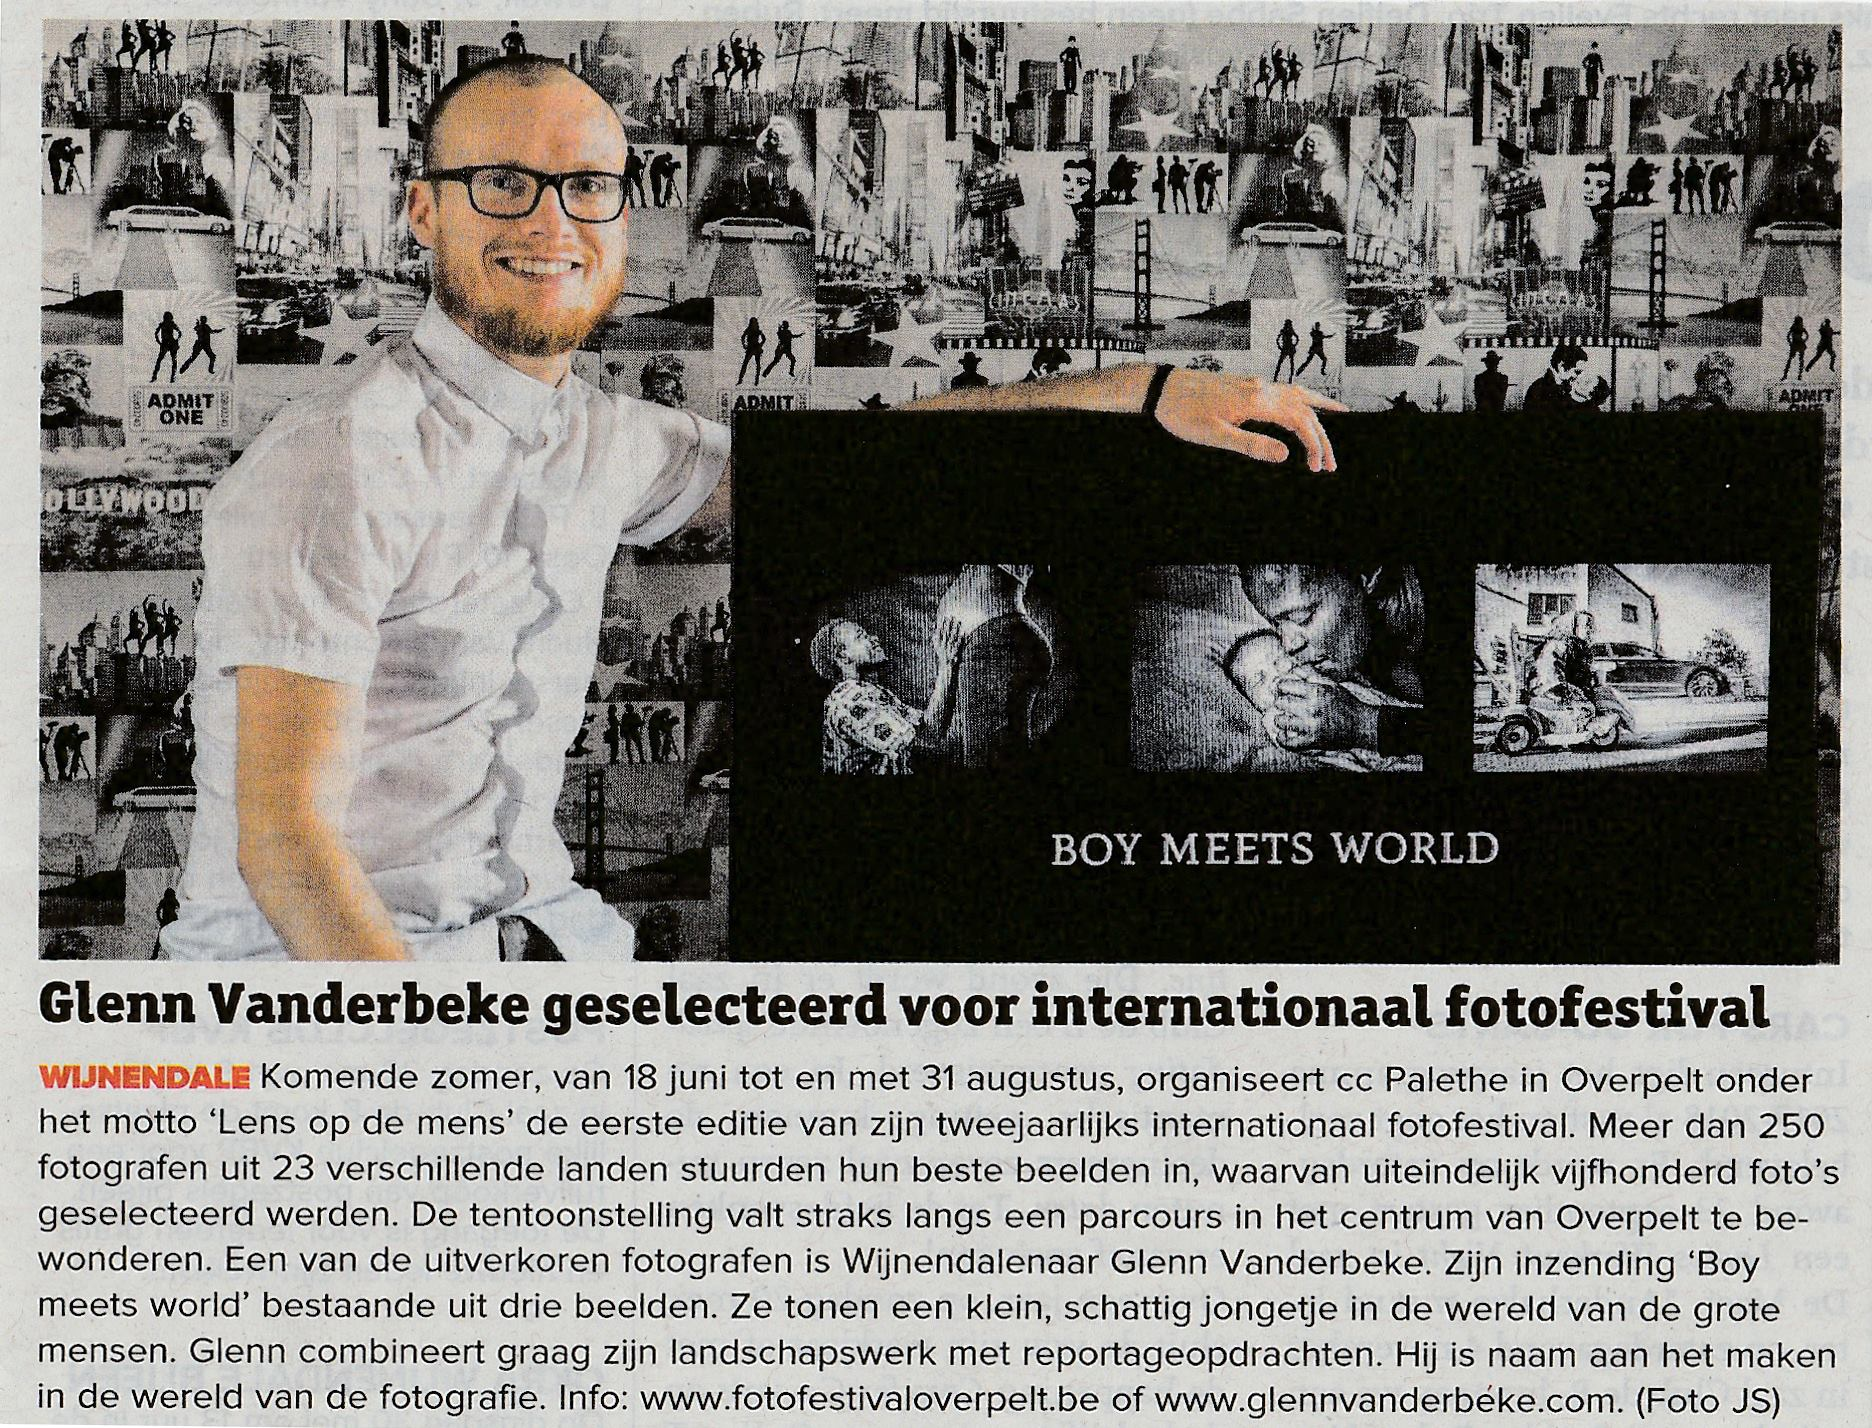 Glenn Vanderbeke, landschapsfotografie, landschapsfotografie, landschapsfotograaf, reportage, reportagefotografie west-vlaanderen, lens op de mens, internationaal fotofestival overpelt, boys meets world